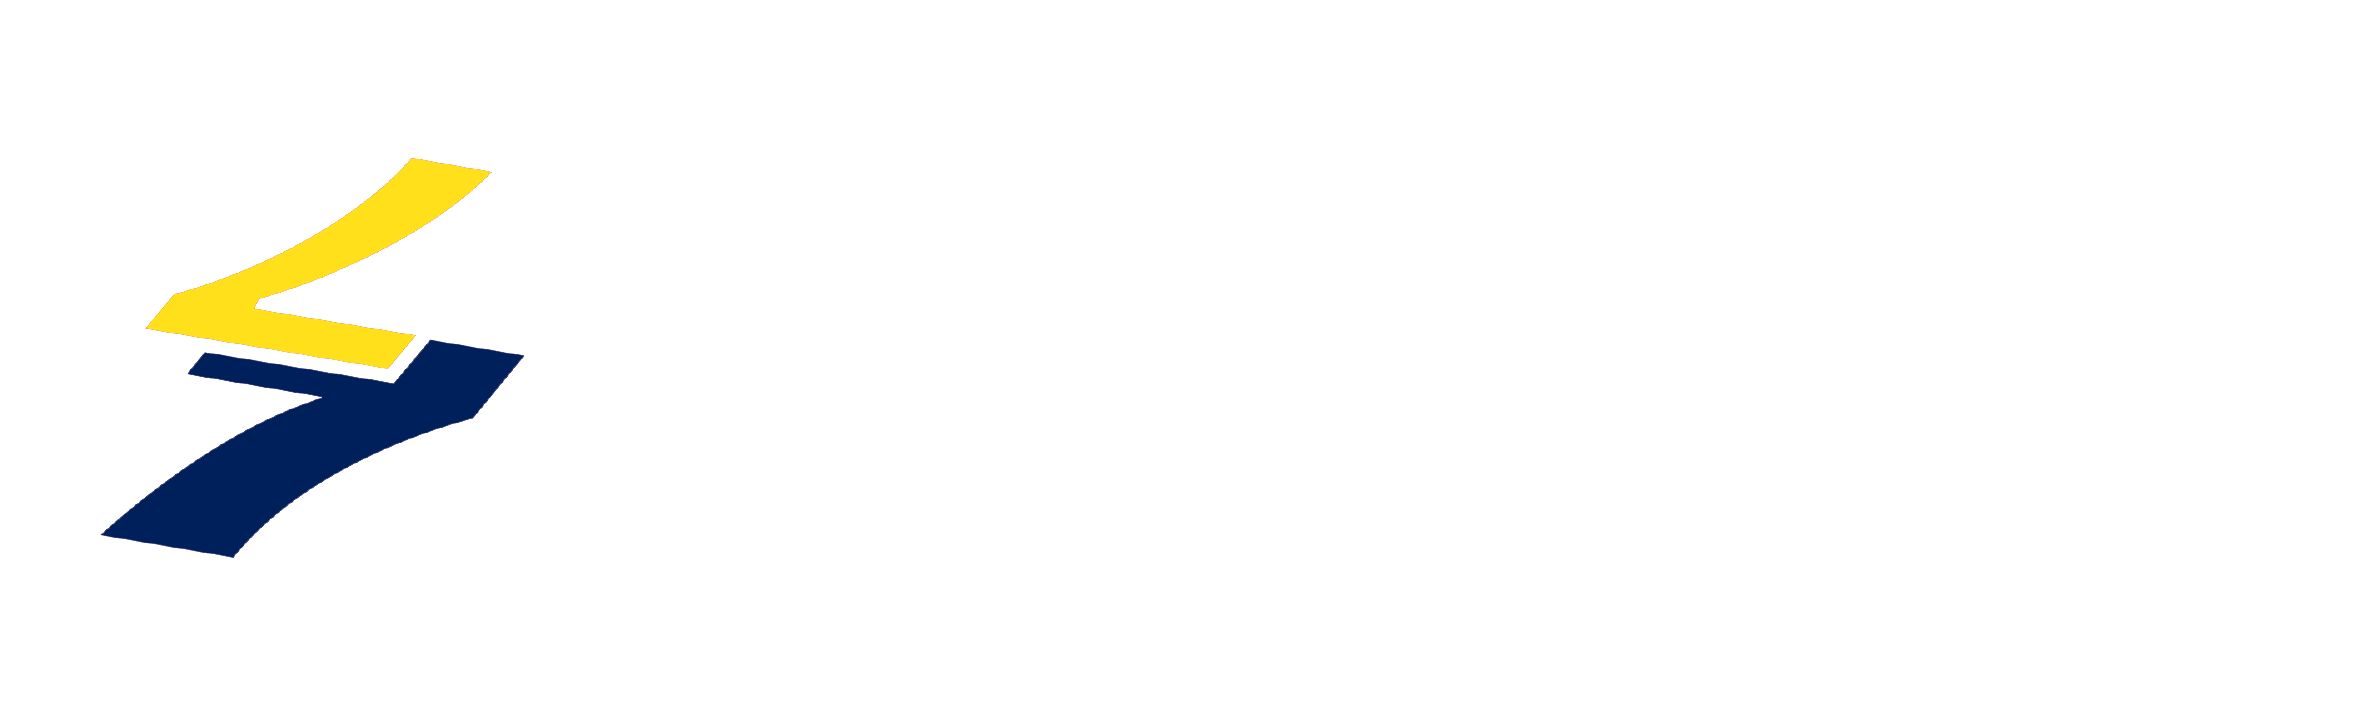 LoCity Driver Training